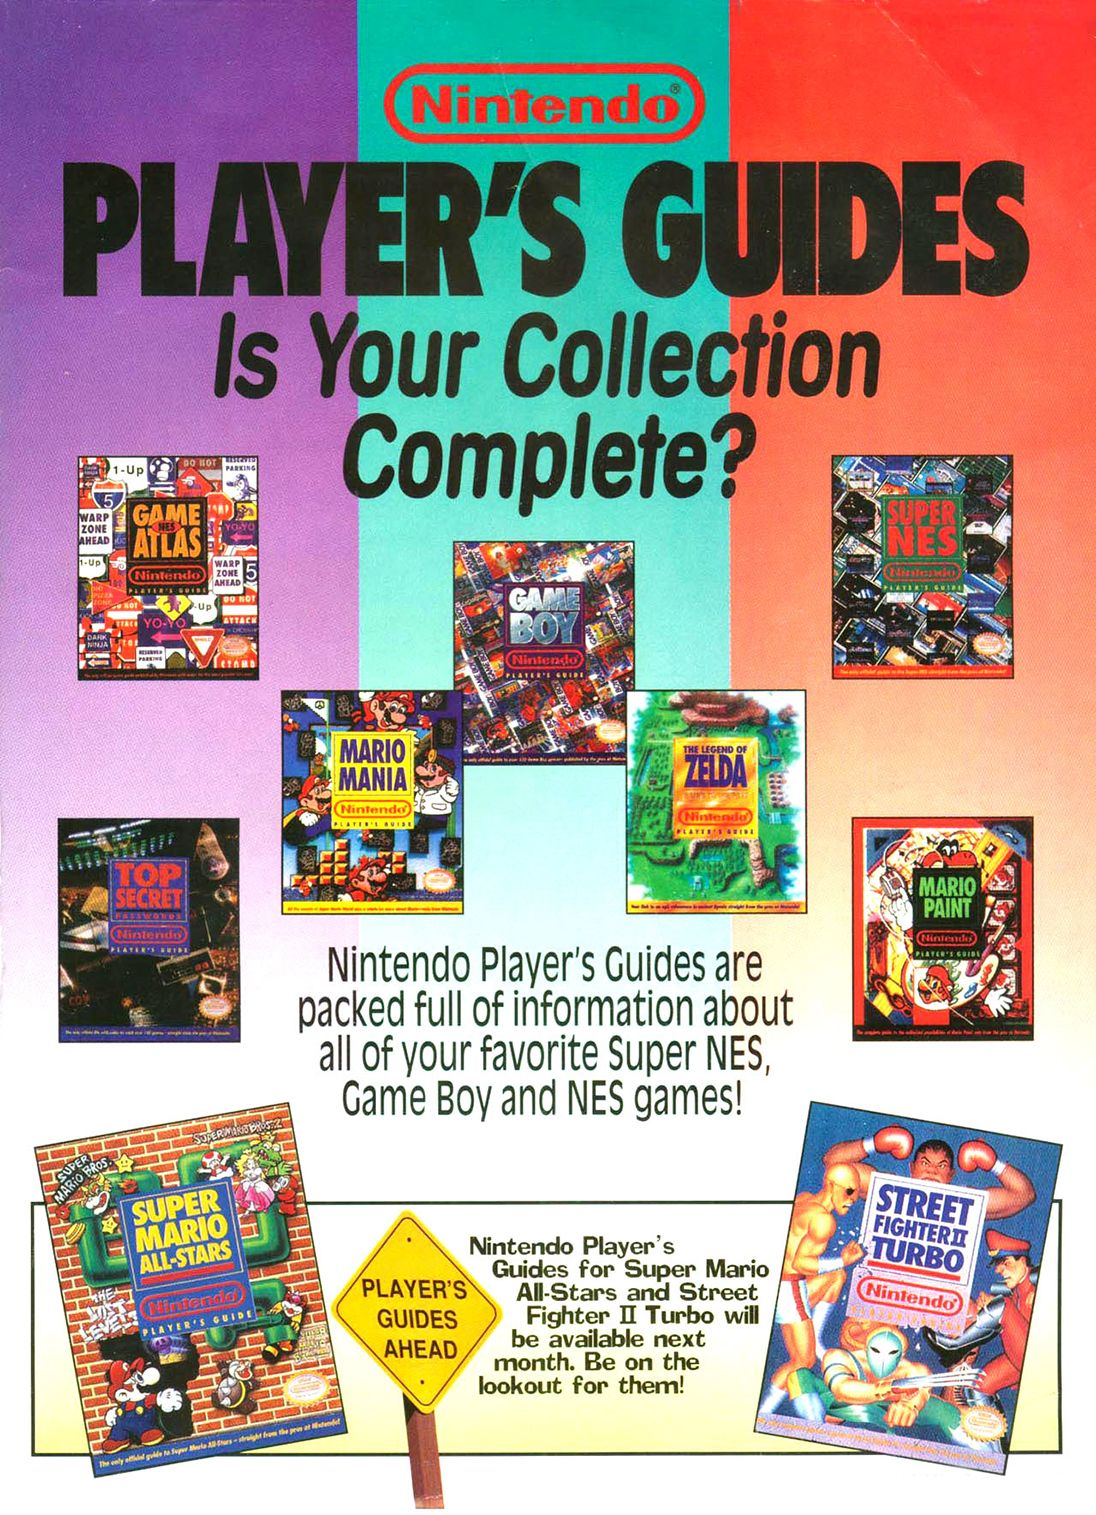 Nintendo Player's Guide Ad Is Your Collection Complete